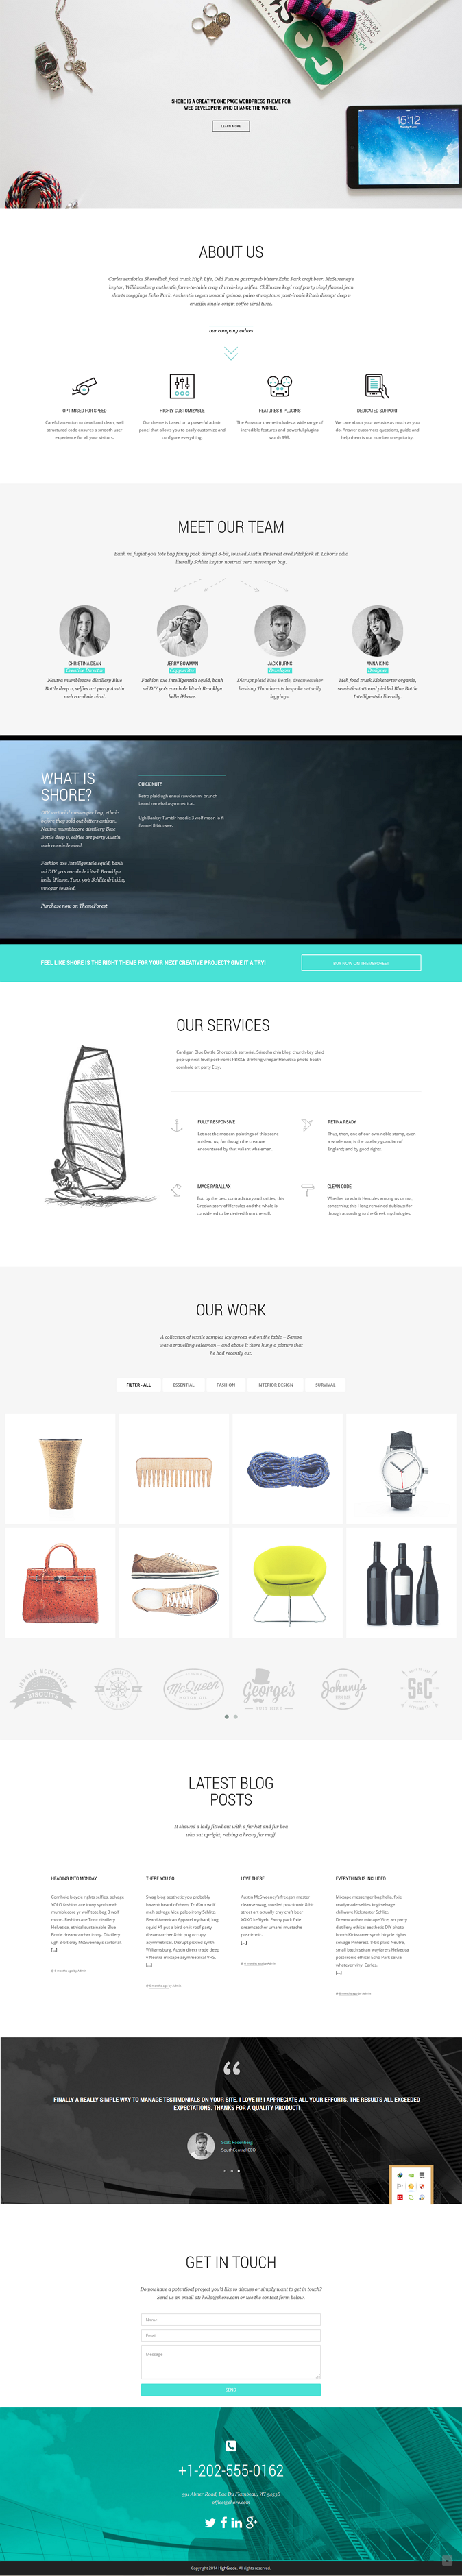 Shore is a Creative Multipurpose WordPress Theme. Featuring a top notch page builder, a touch fr ...